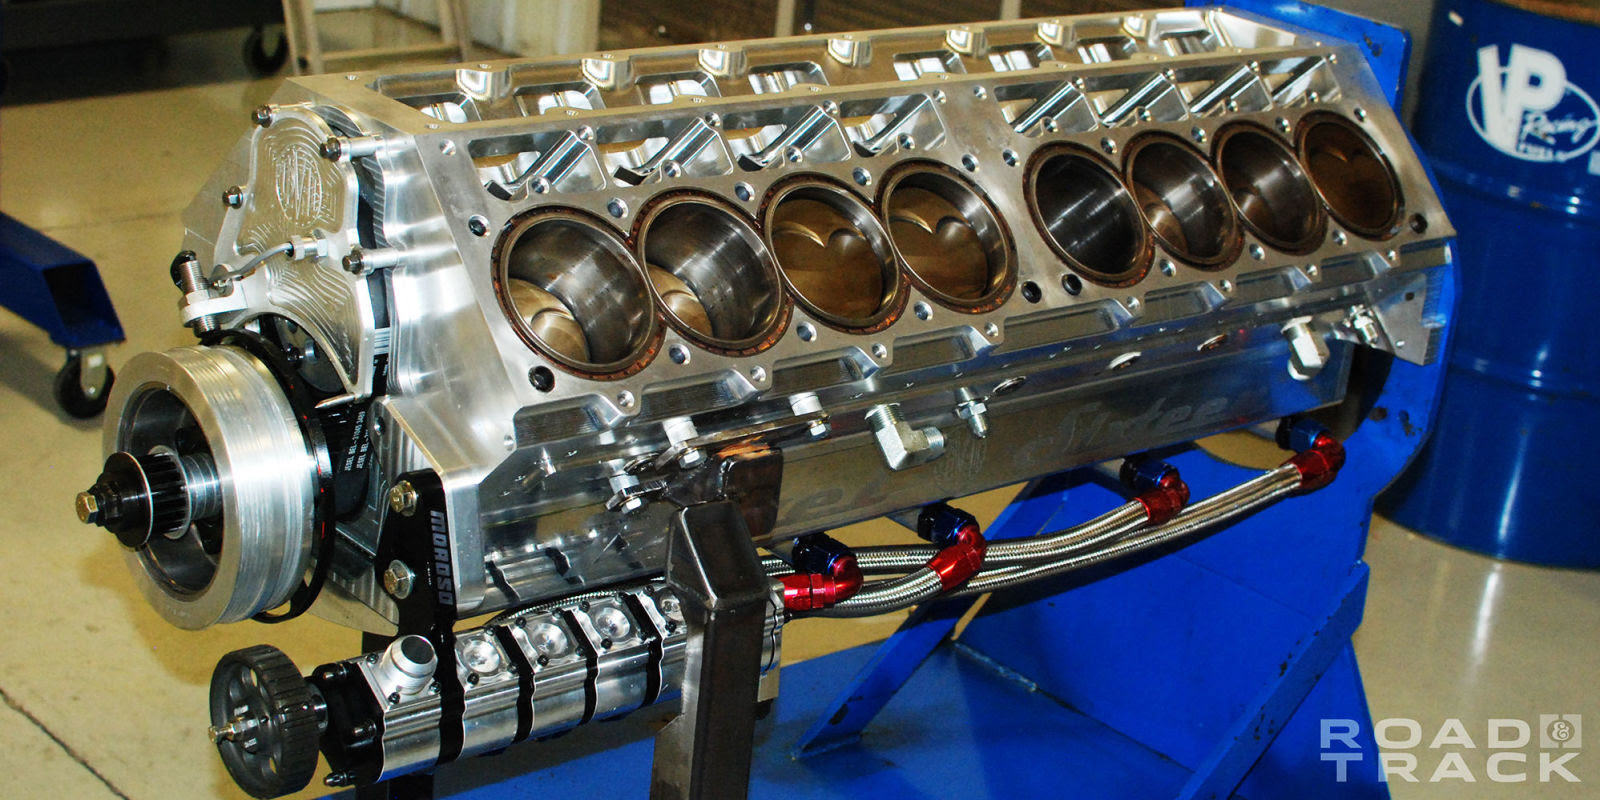 That Crazy 5000-hp, Quad-Turbo, 12.3-Liter V16 Is So Much ...